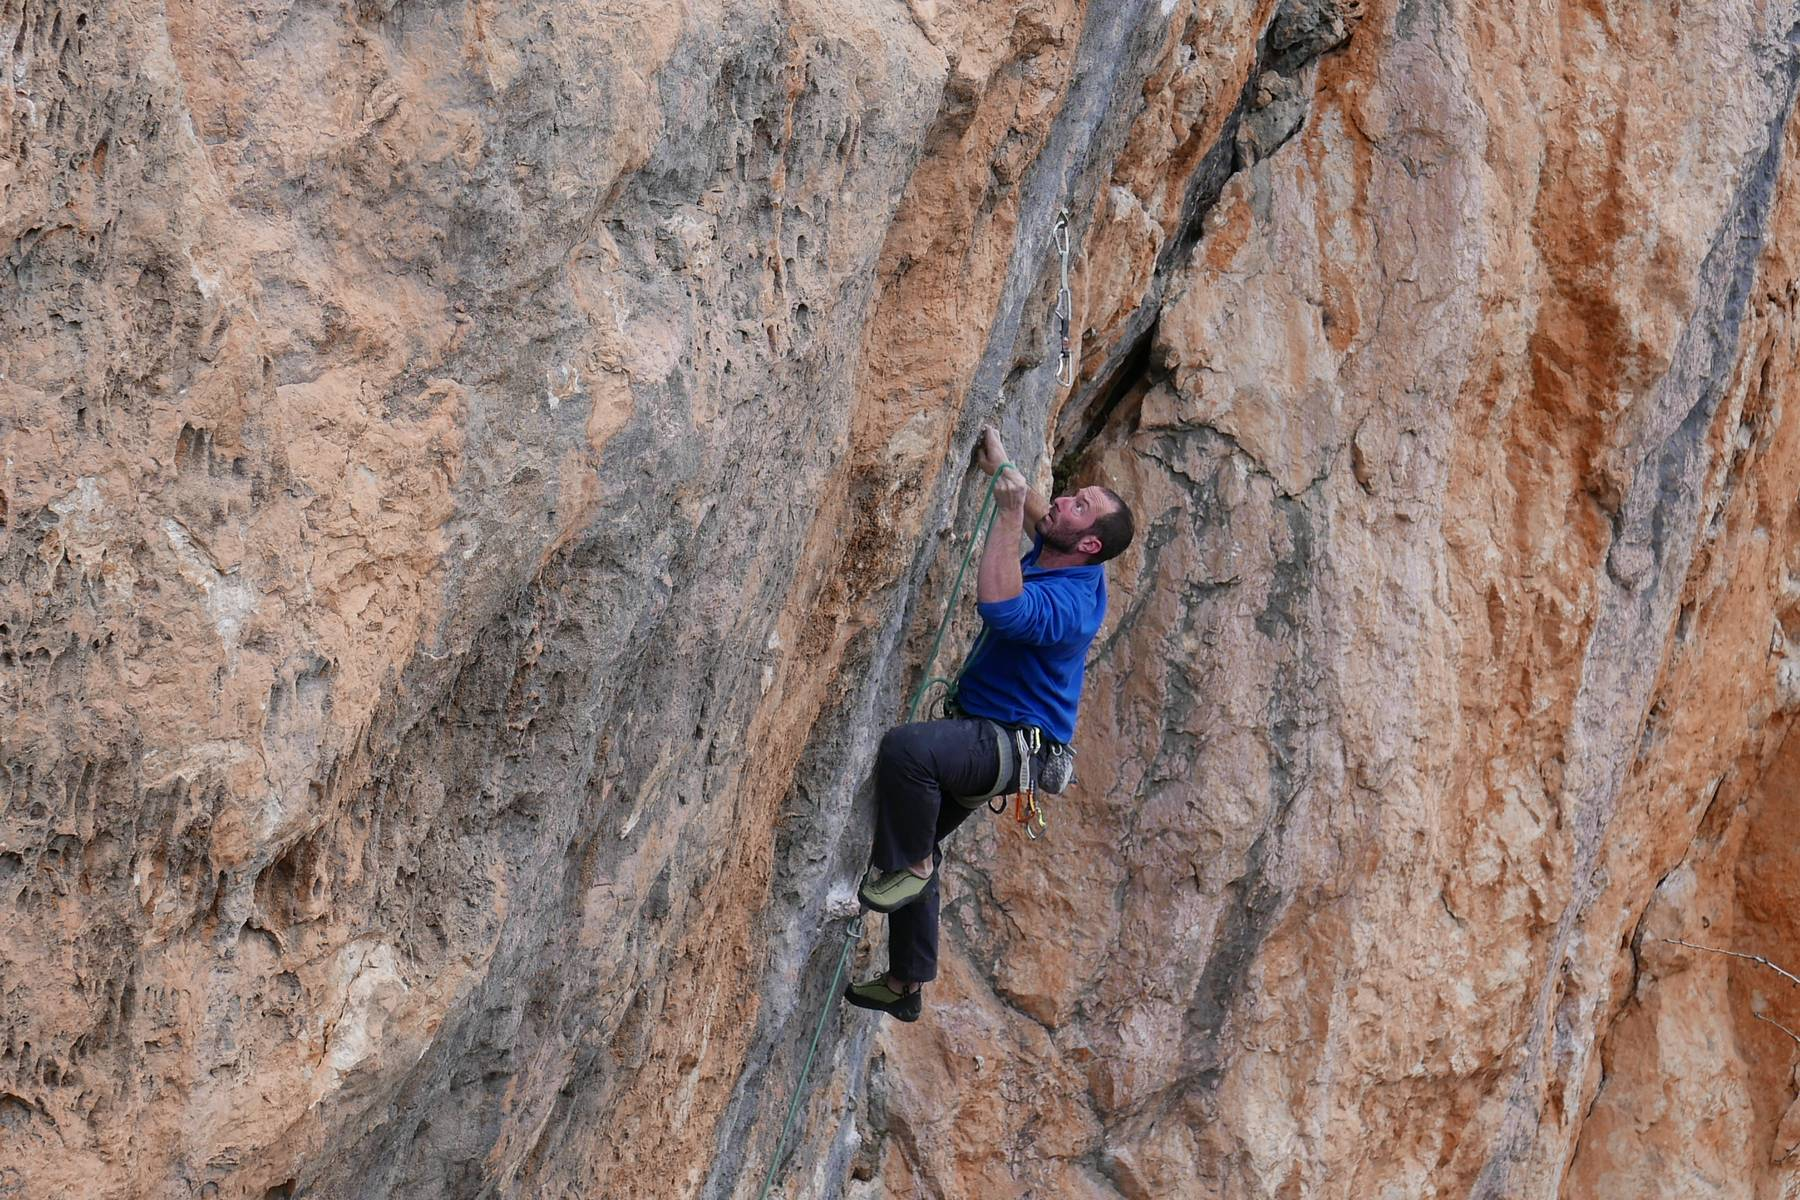 Rock Climbing course on the French Riviera - LESGECKOS